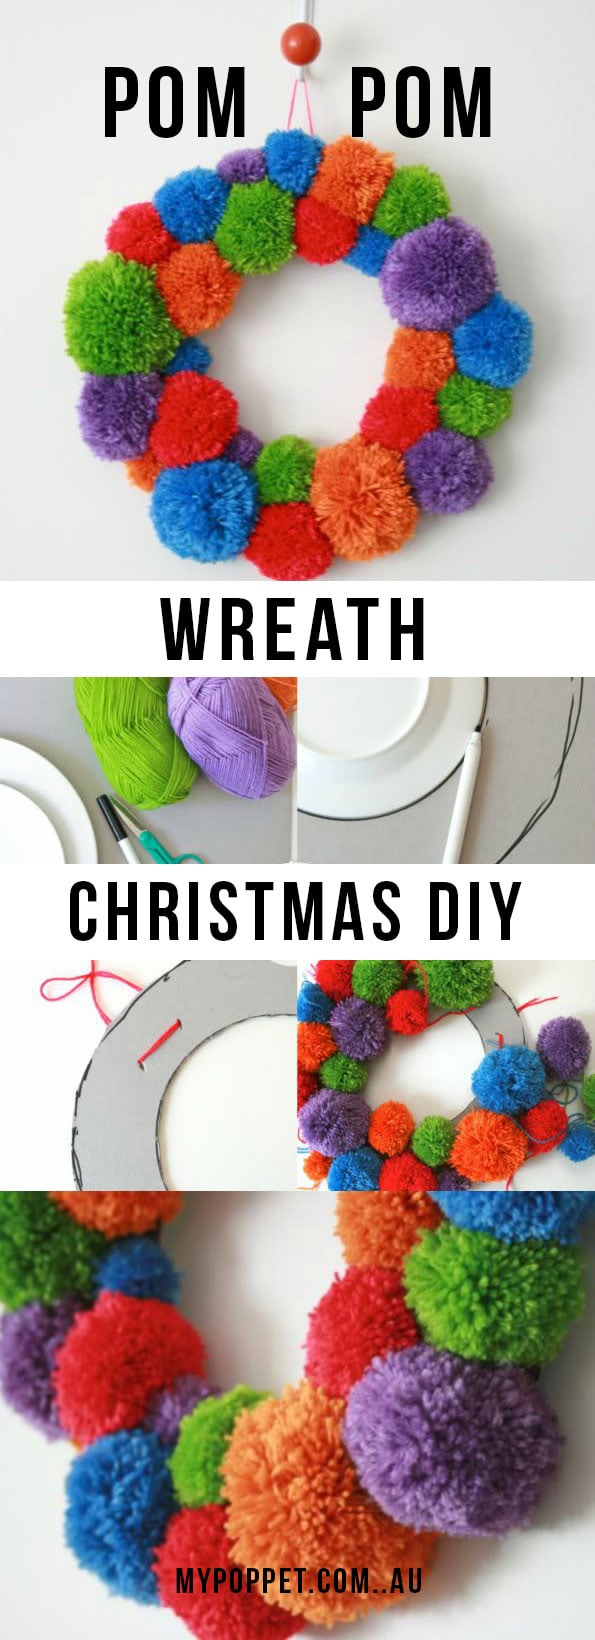 How to make a Pom Pom Wreath for the Holidays - Christmas Craft mypoppet.com.au